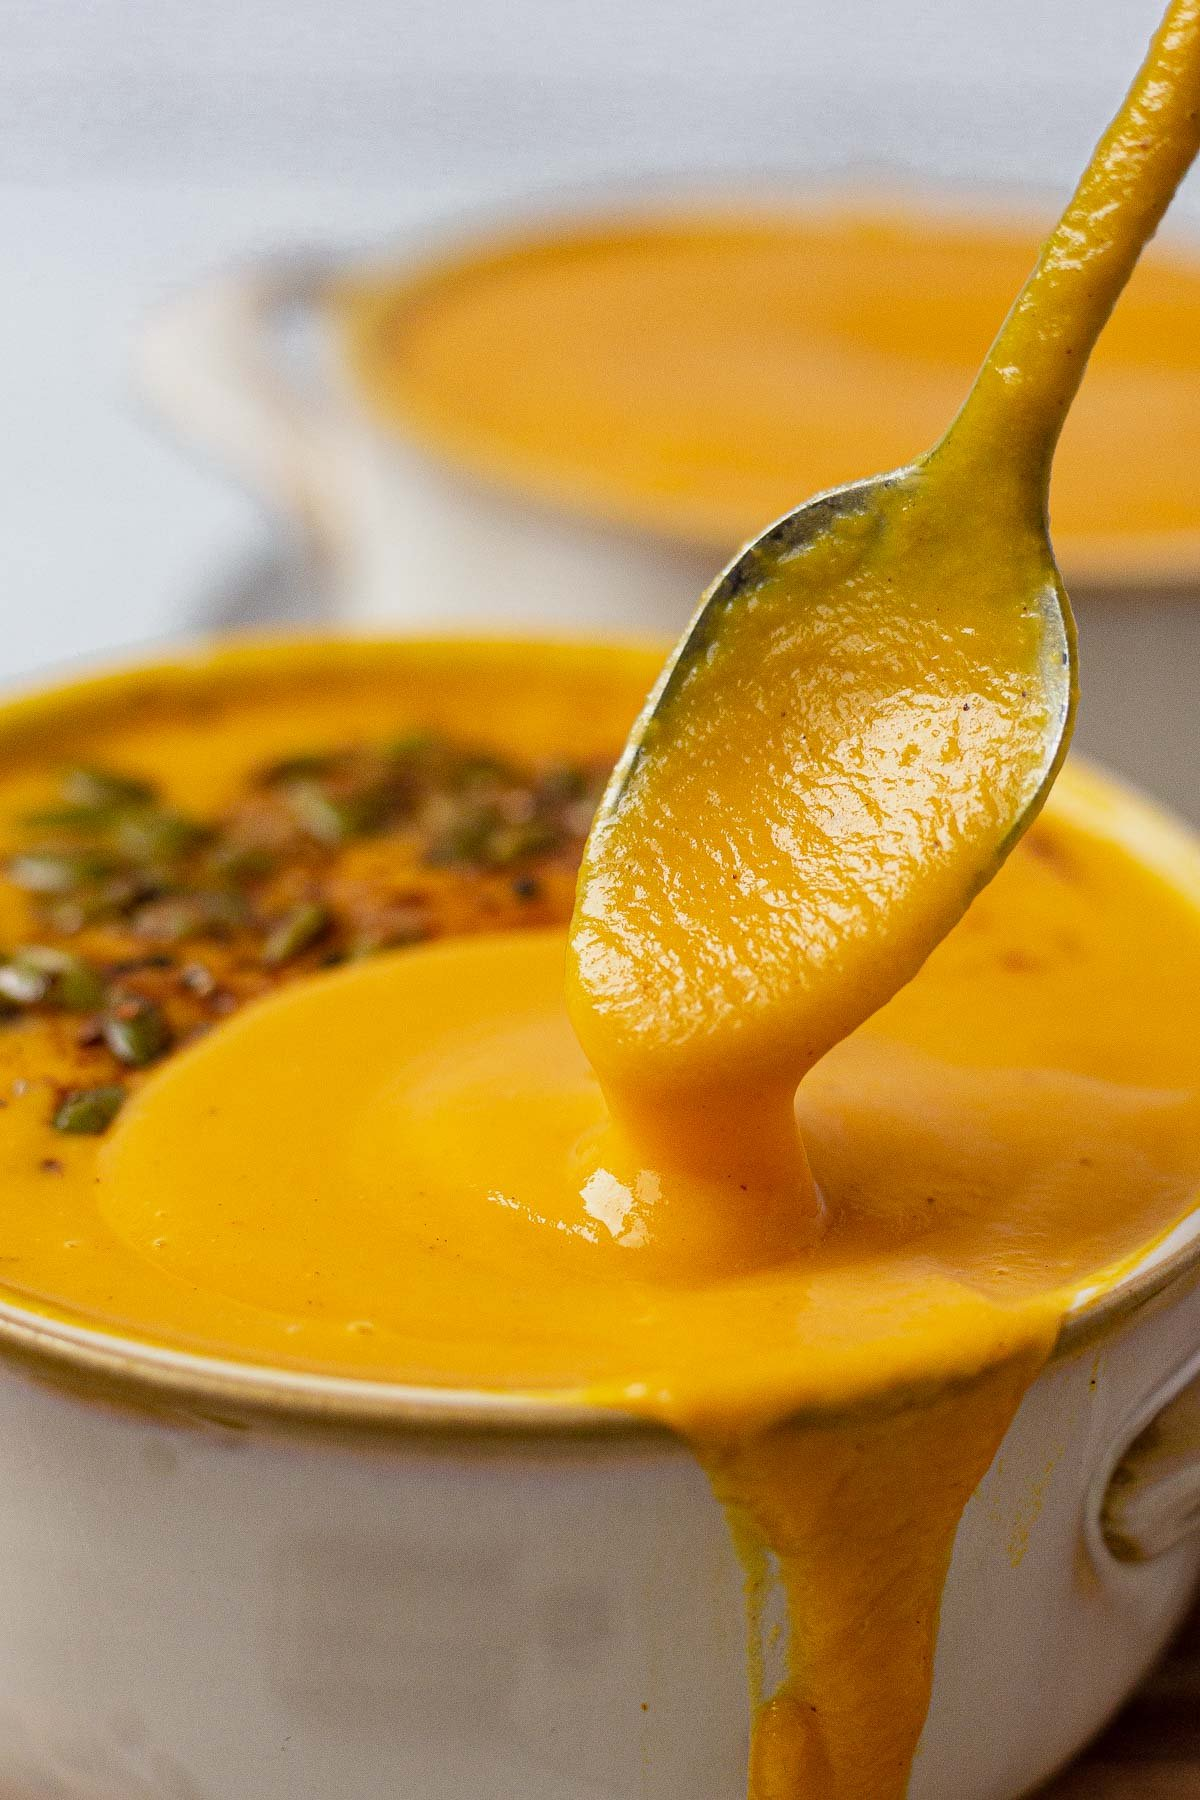 a spoon scooping out homemade creamy panera autumn squash soup from a bowl